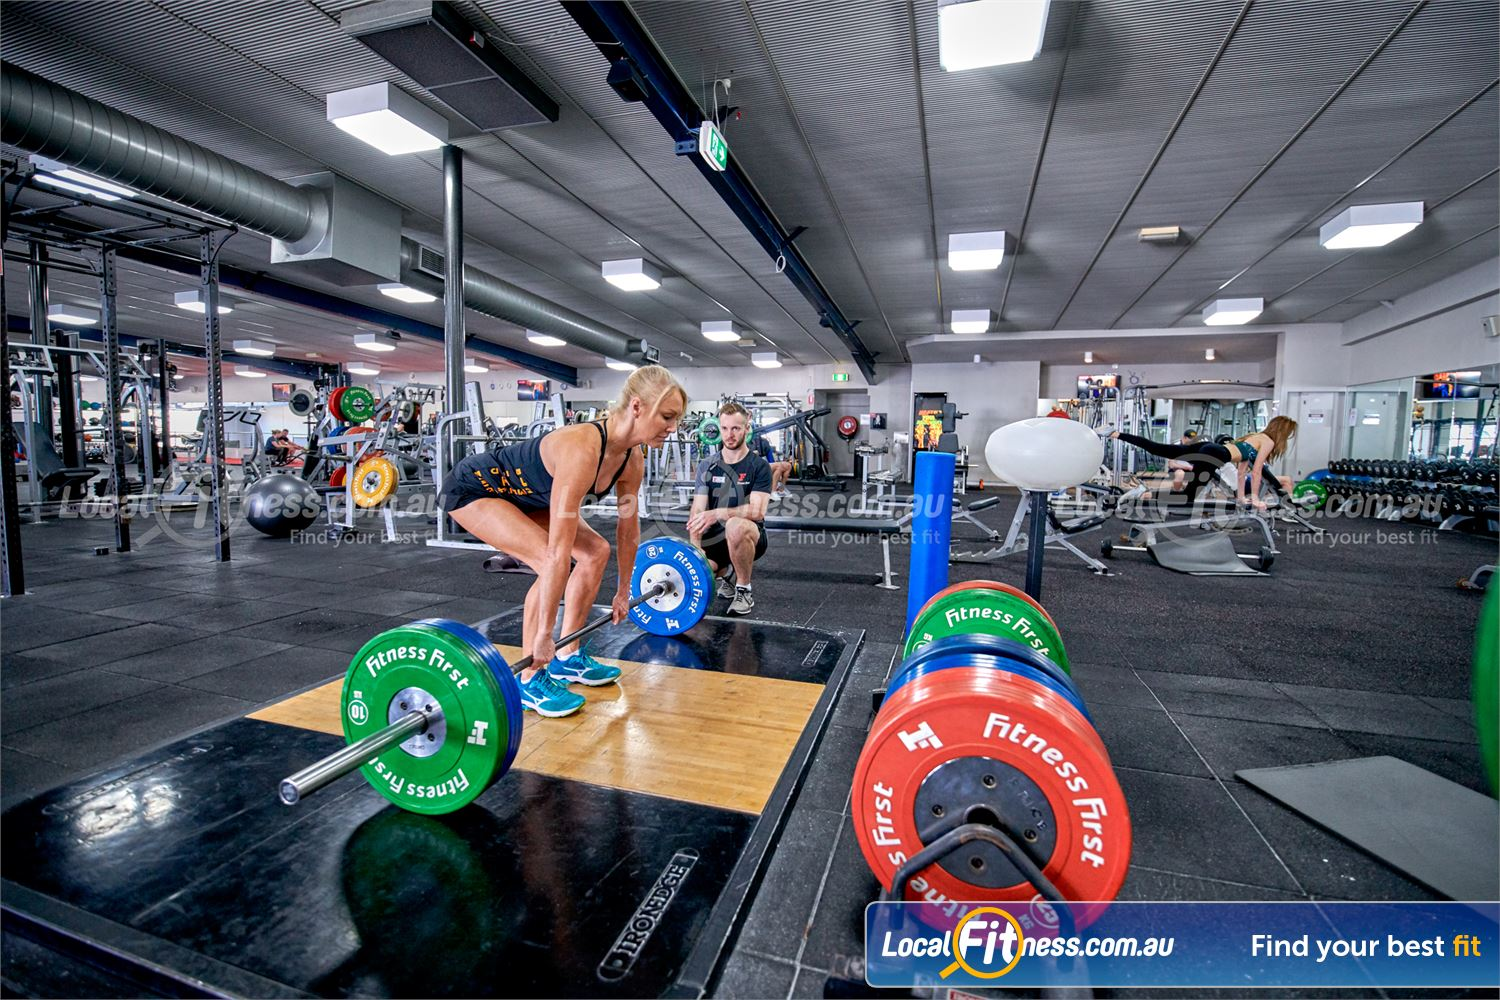 Fitness First Bayside Near Bentleigh Our Bayside gym includes a deadlifting platform.